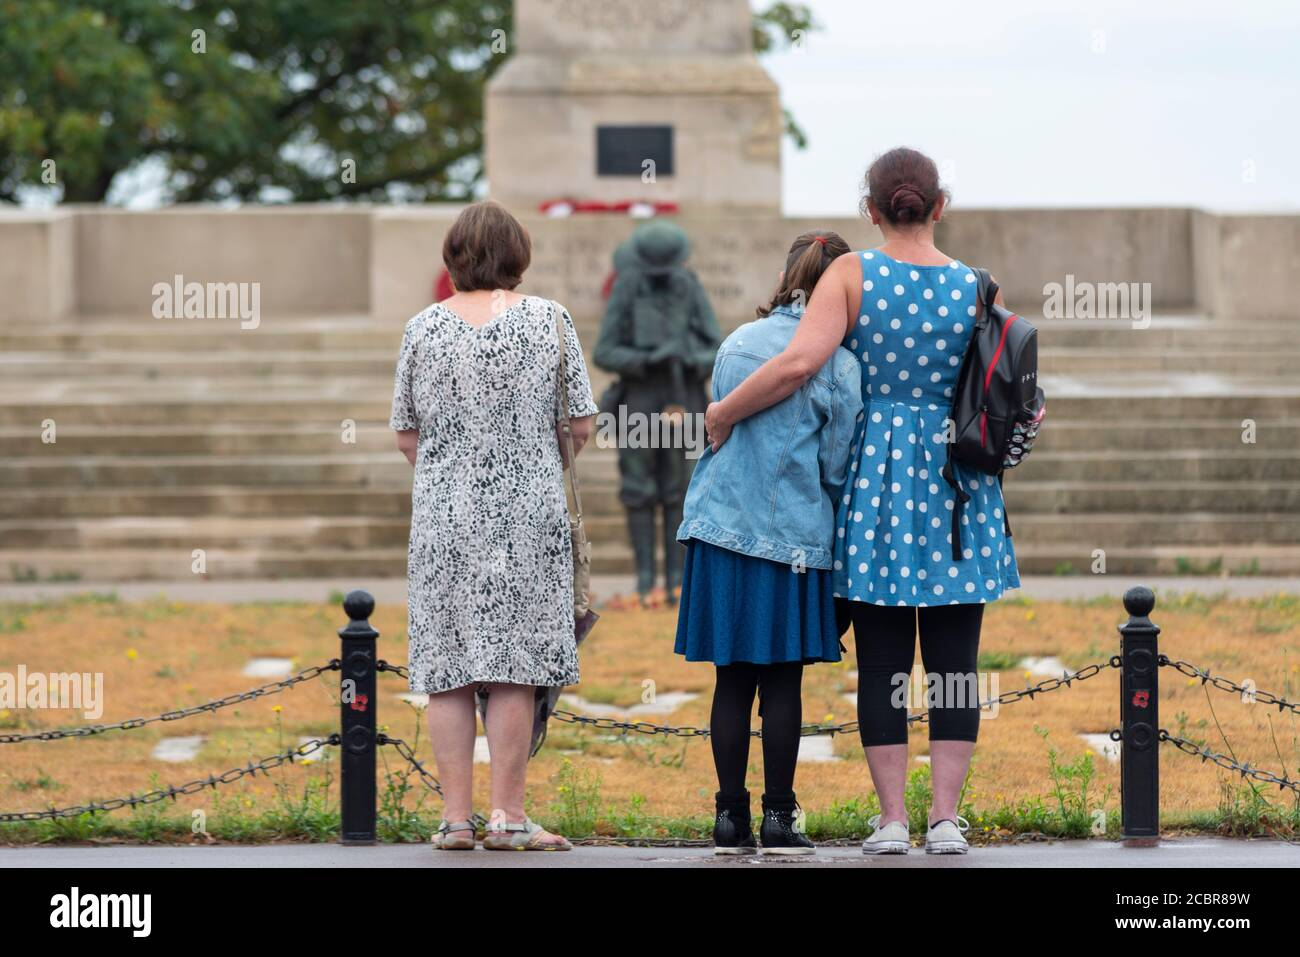 southend-on-sea-essex-uk-15th-aug-2020-with-public-vj-day-events-being-cancelled-due-to-the-covid-19-coronavirus-guidelines-a-few-people-visited-the-southend-cenotaph-to-pay-their-respects-at-11am-they-held-an-unofficial-minutes-silence-to-remember-credit-avpicsalamy-live-news-2CBR89W.jpg